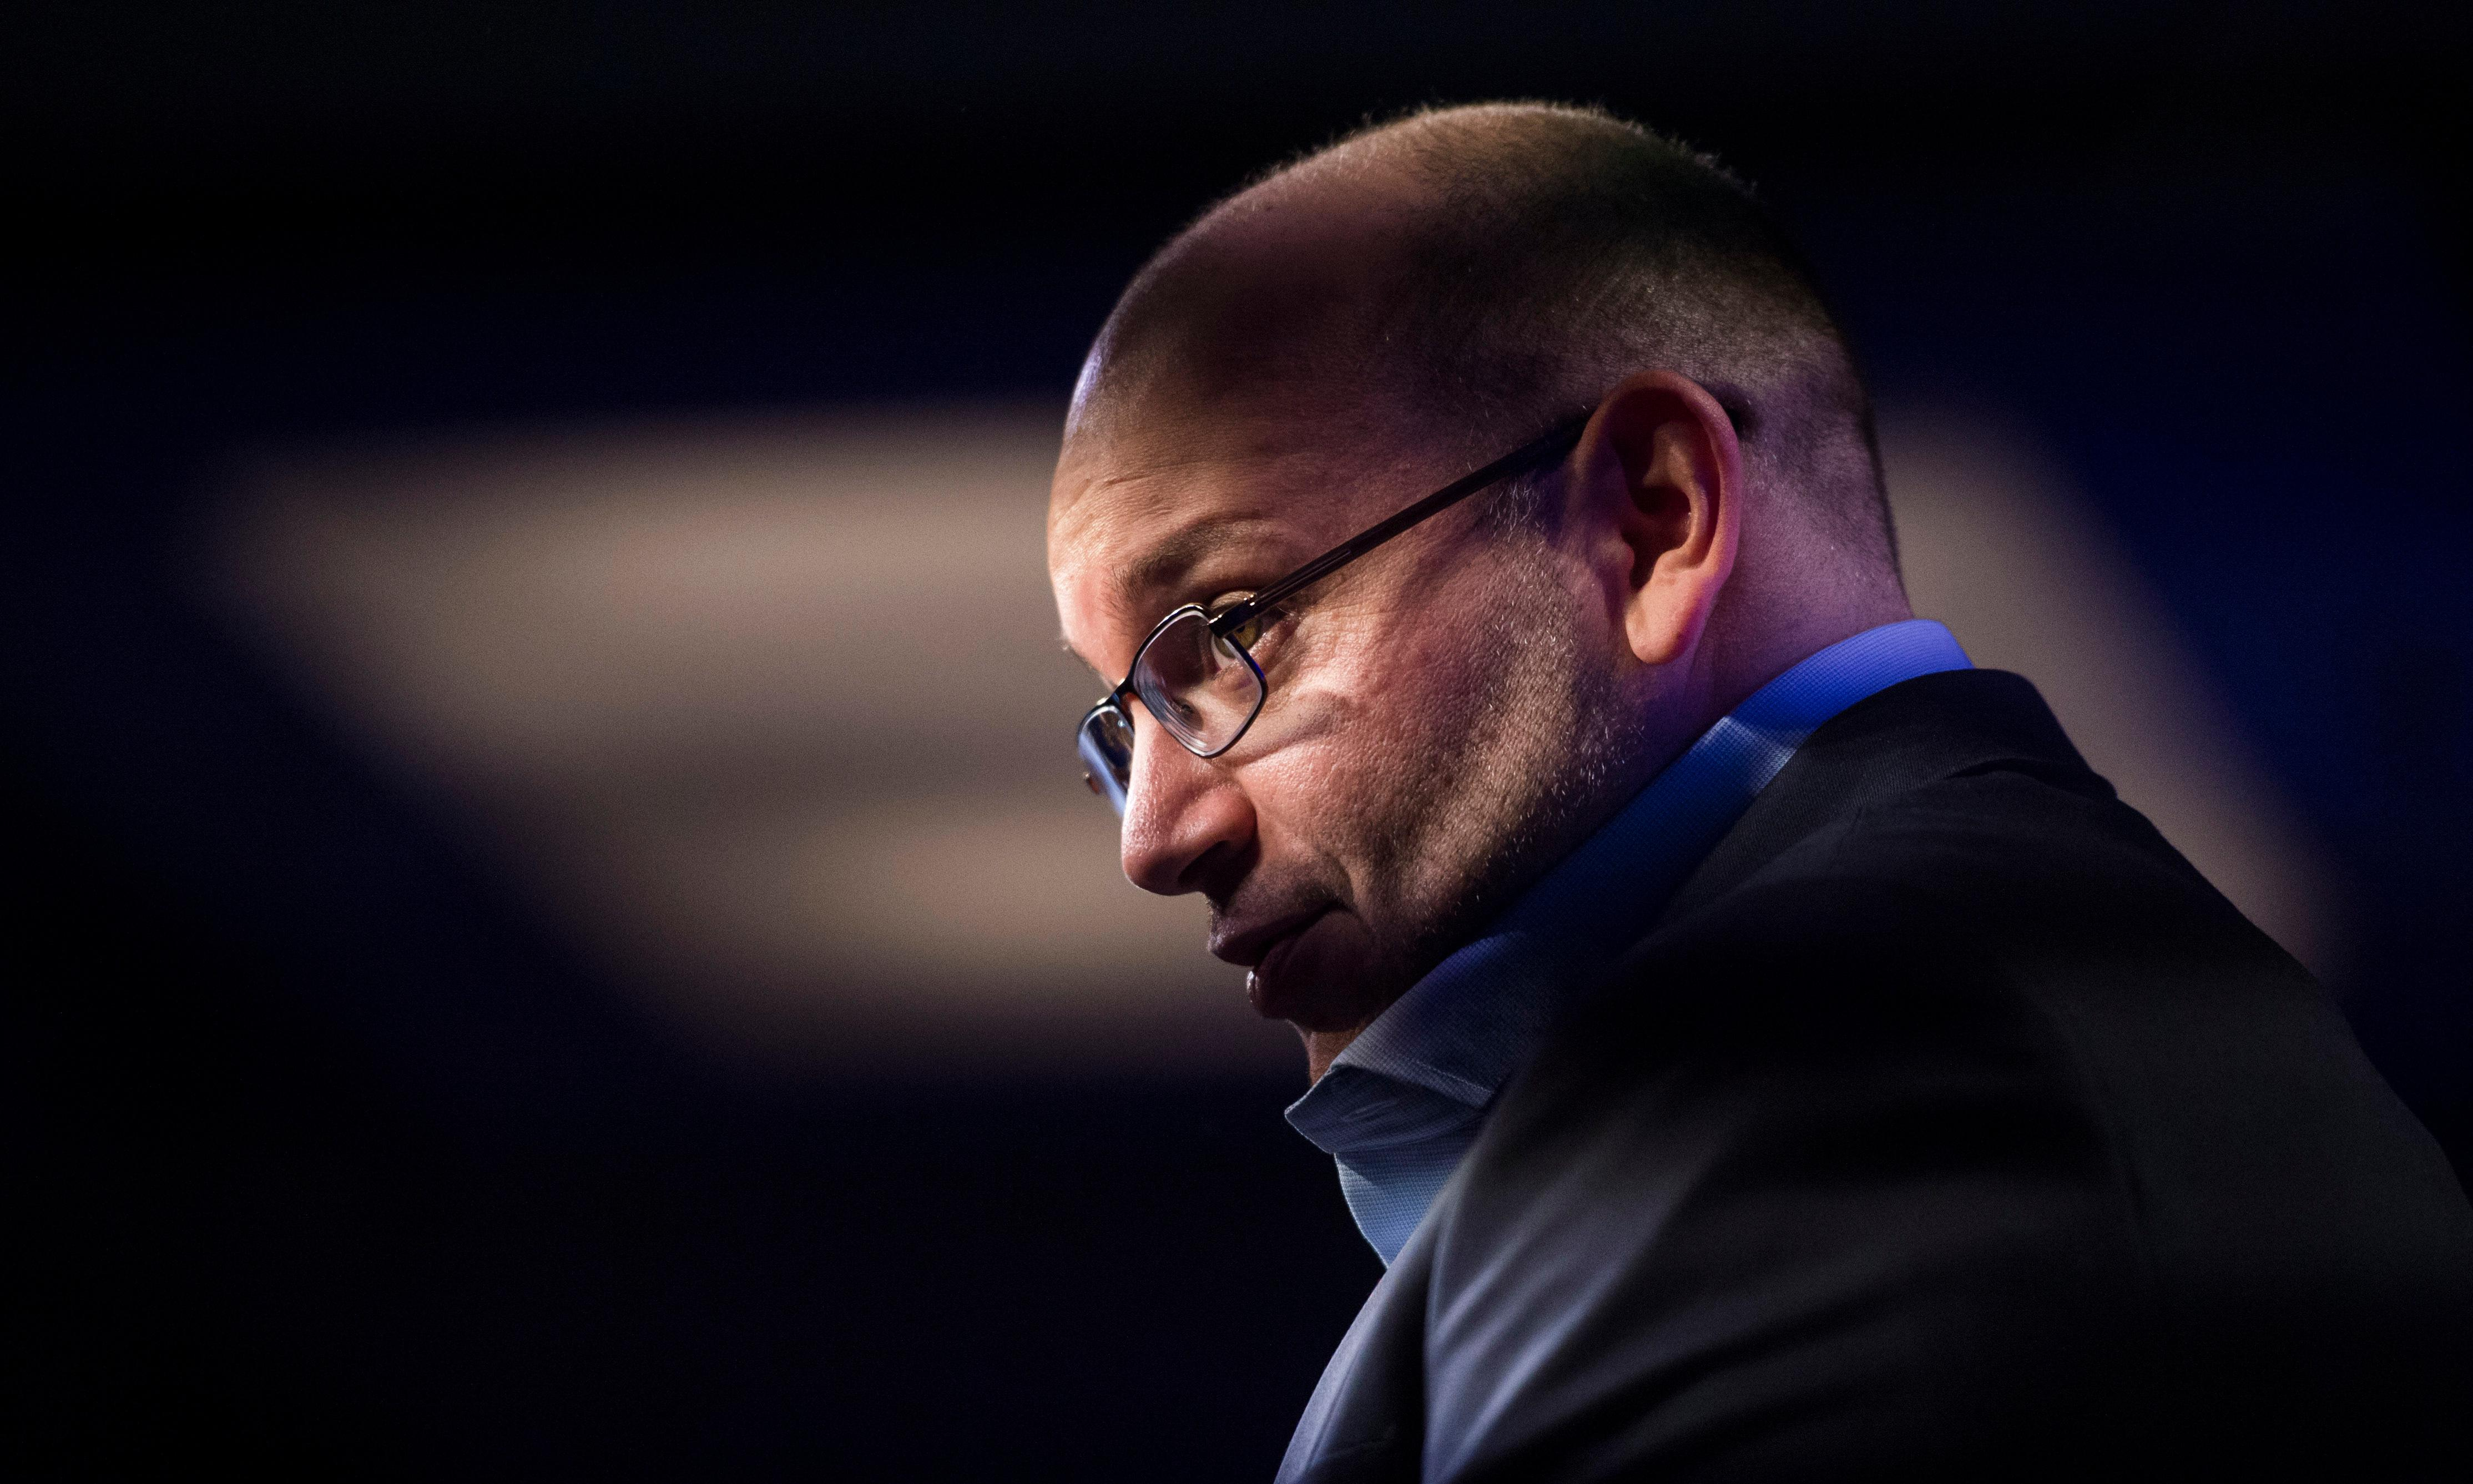 Reporter Jason Rezaian on 544 days in Iranian jail: 'They never touched me – but I was tortured'